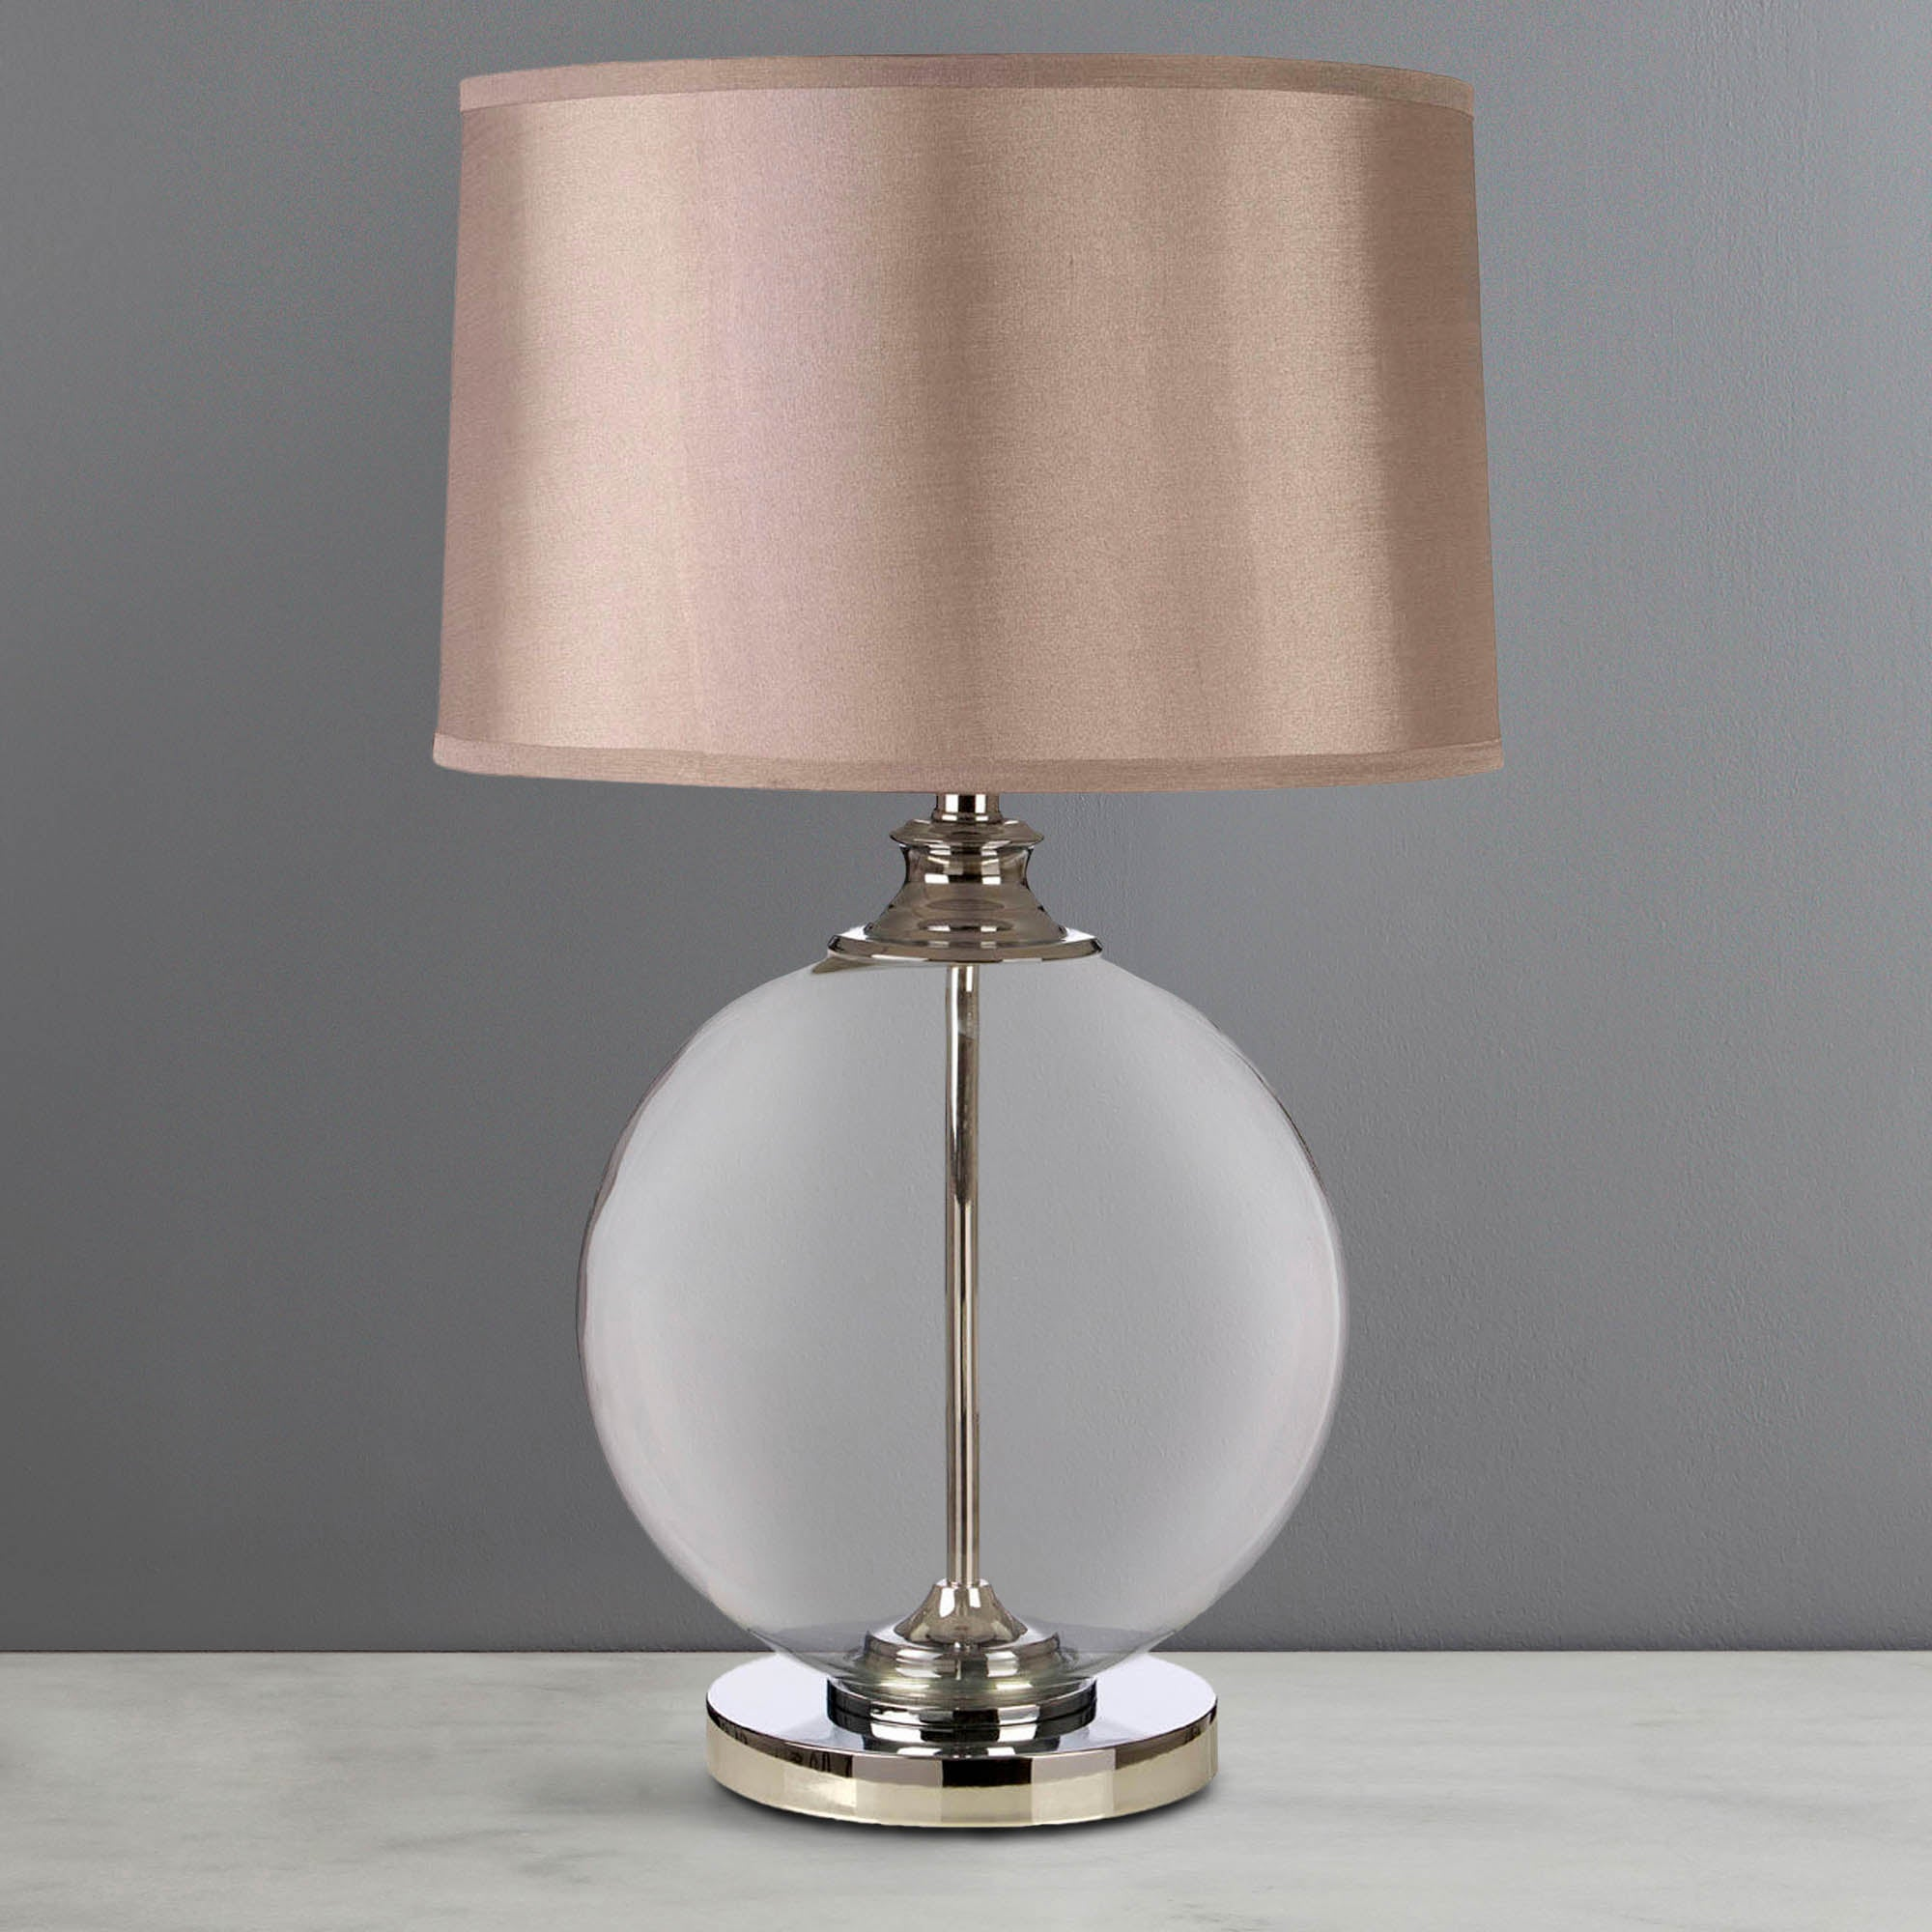 Photo of Edna table lamp natural